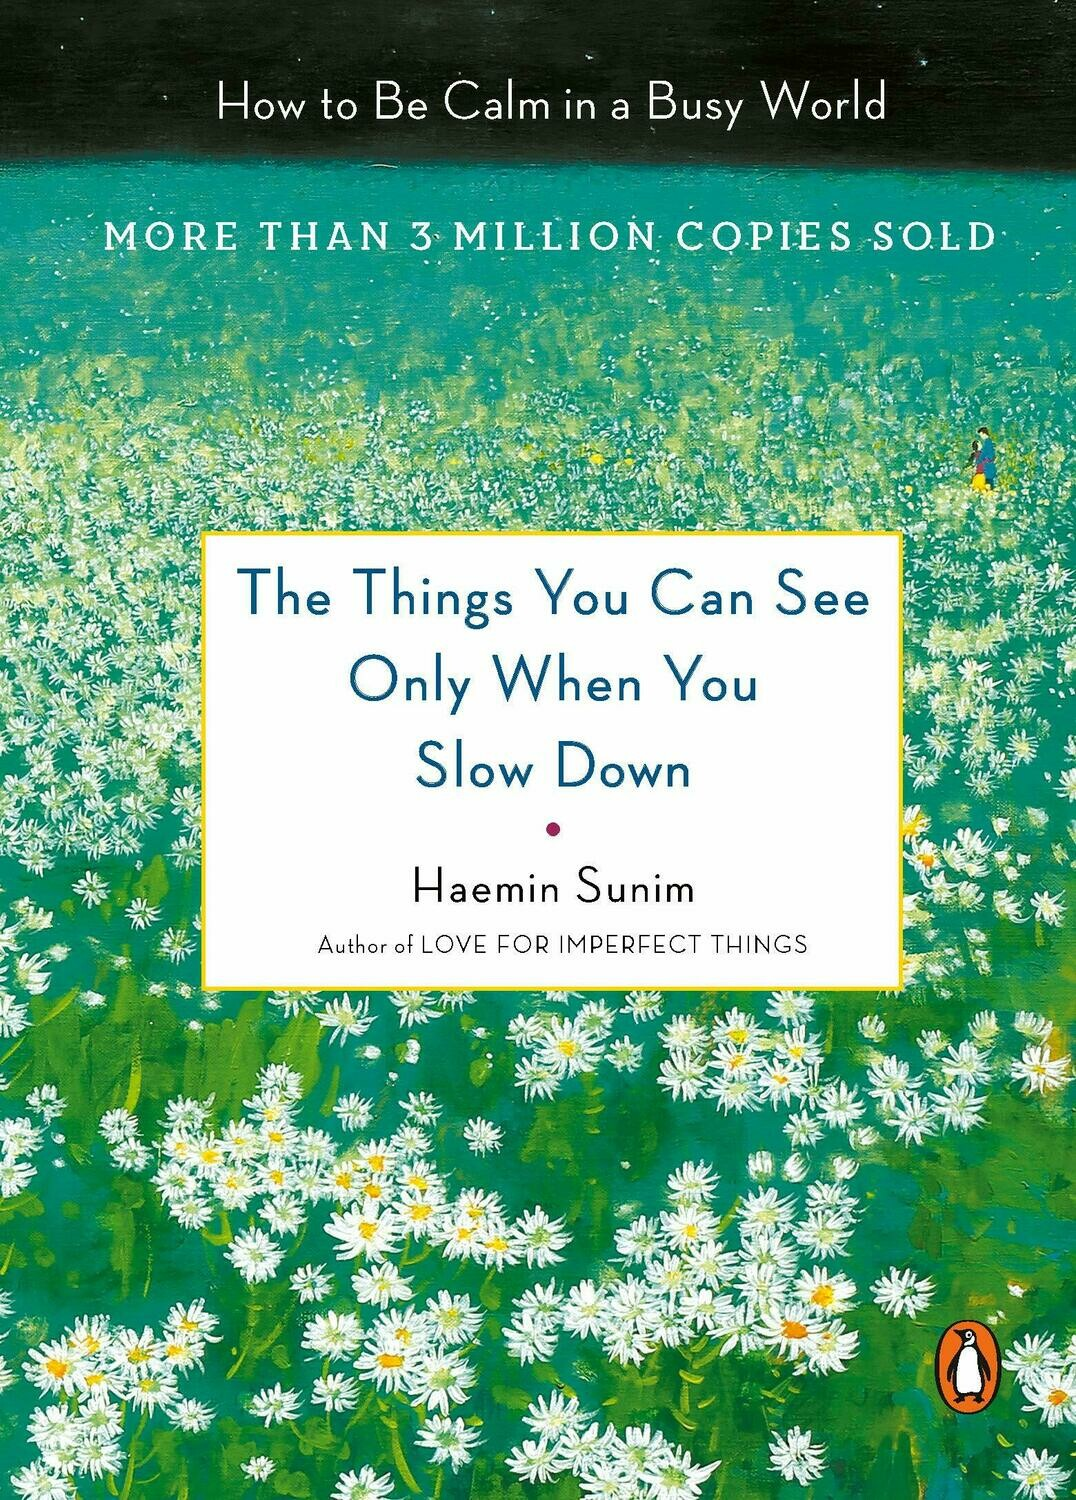 The Things You Can See Only When You Slow Down: How to Be Calm in a Busy World Hardcover